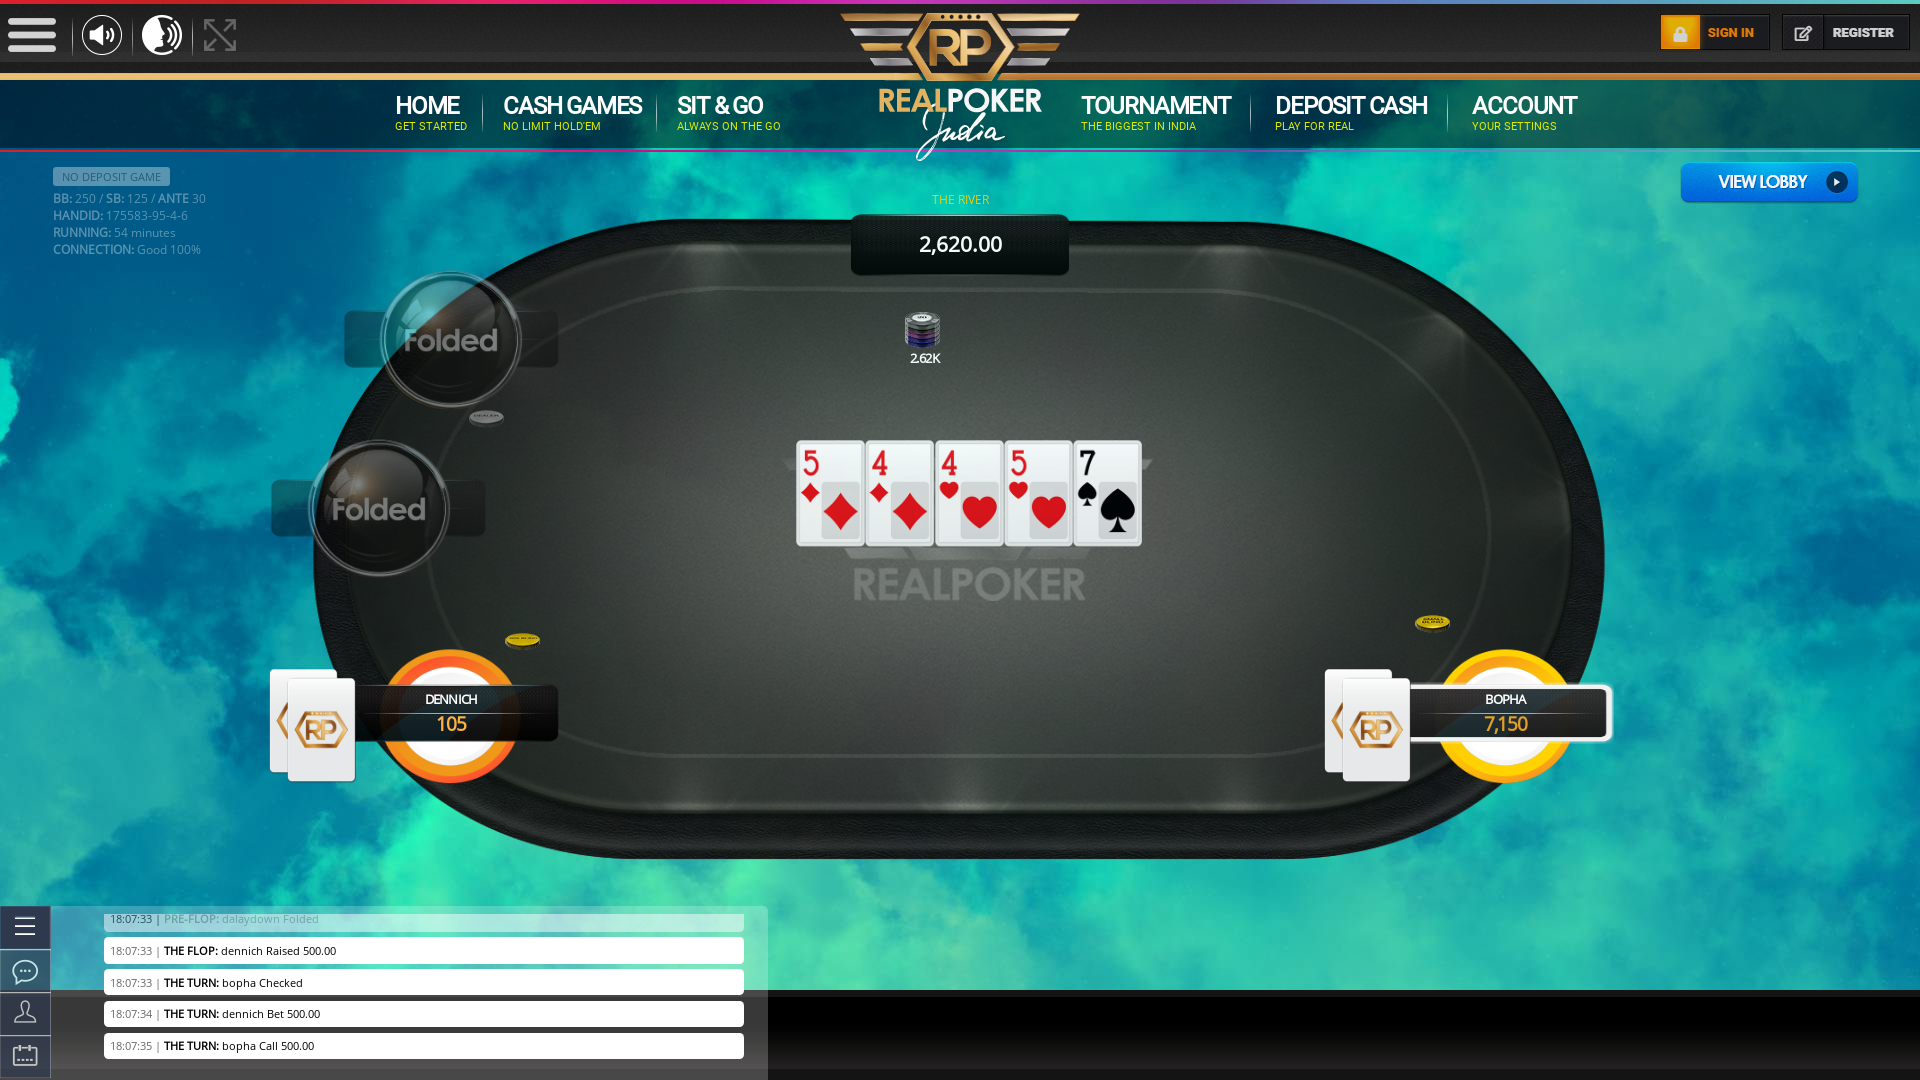 Defence Colony, New Delhi online poker game on a 10 player table in the 54th minute of the game